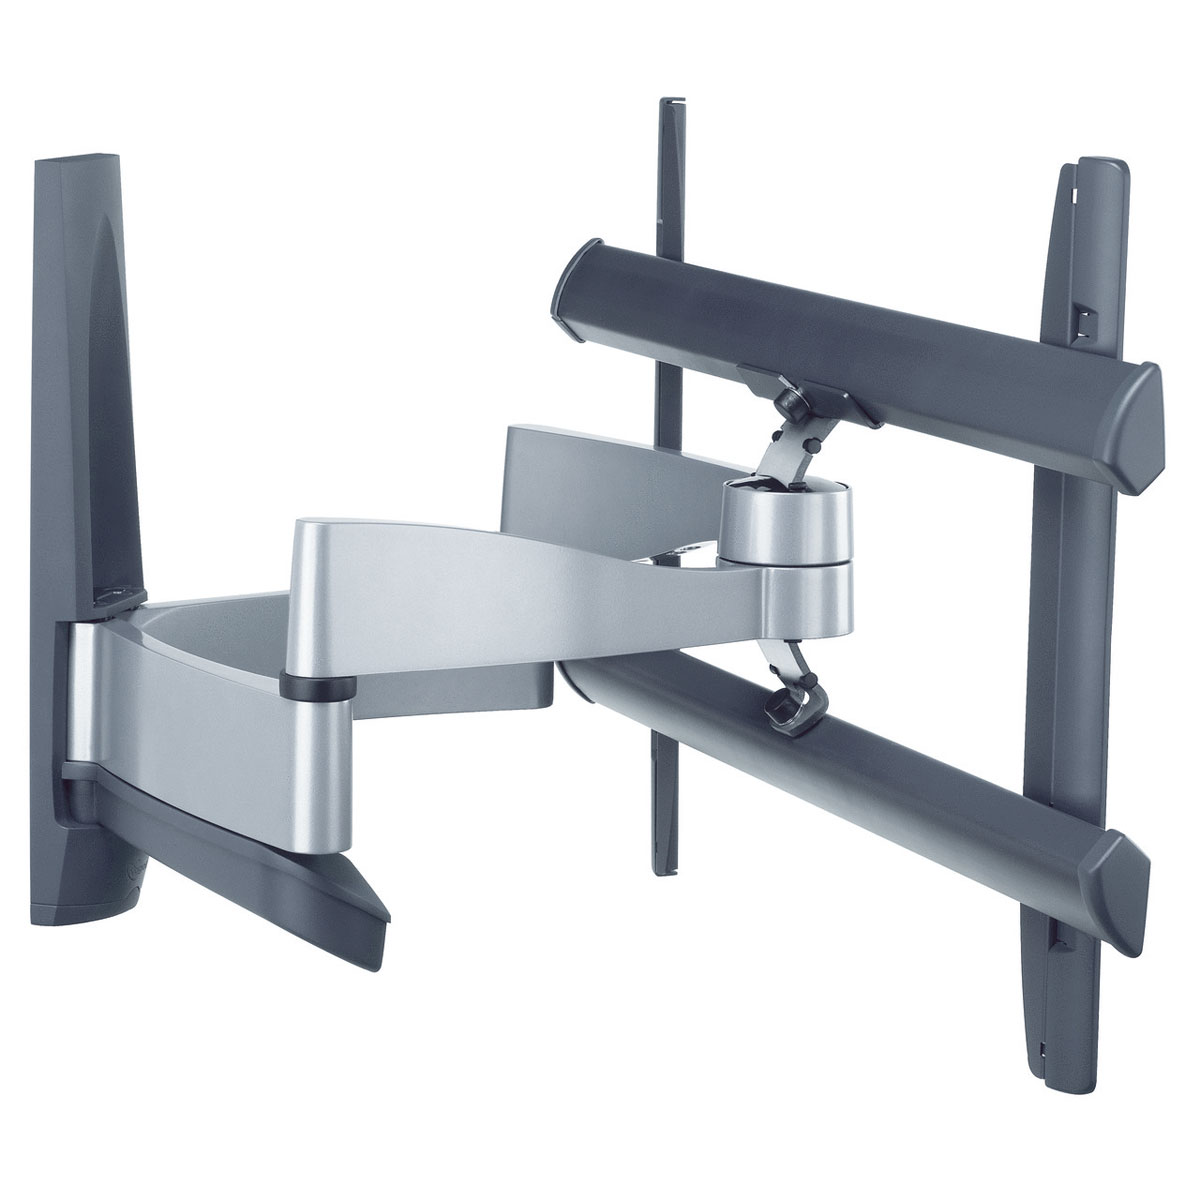 Vogel 39 s efw 6345 plus support mural tv vogel 39 s sur - Support tv mural orientable ...